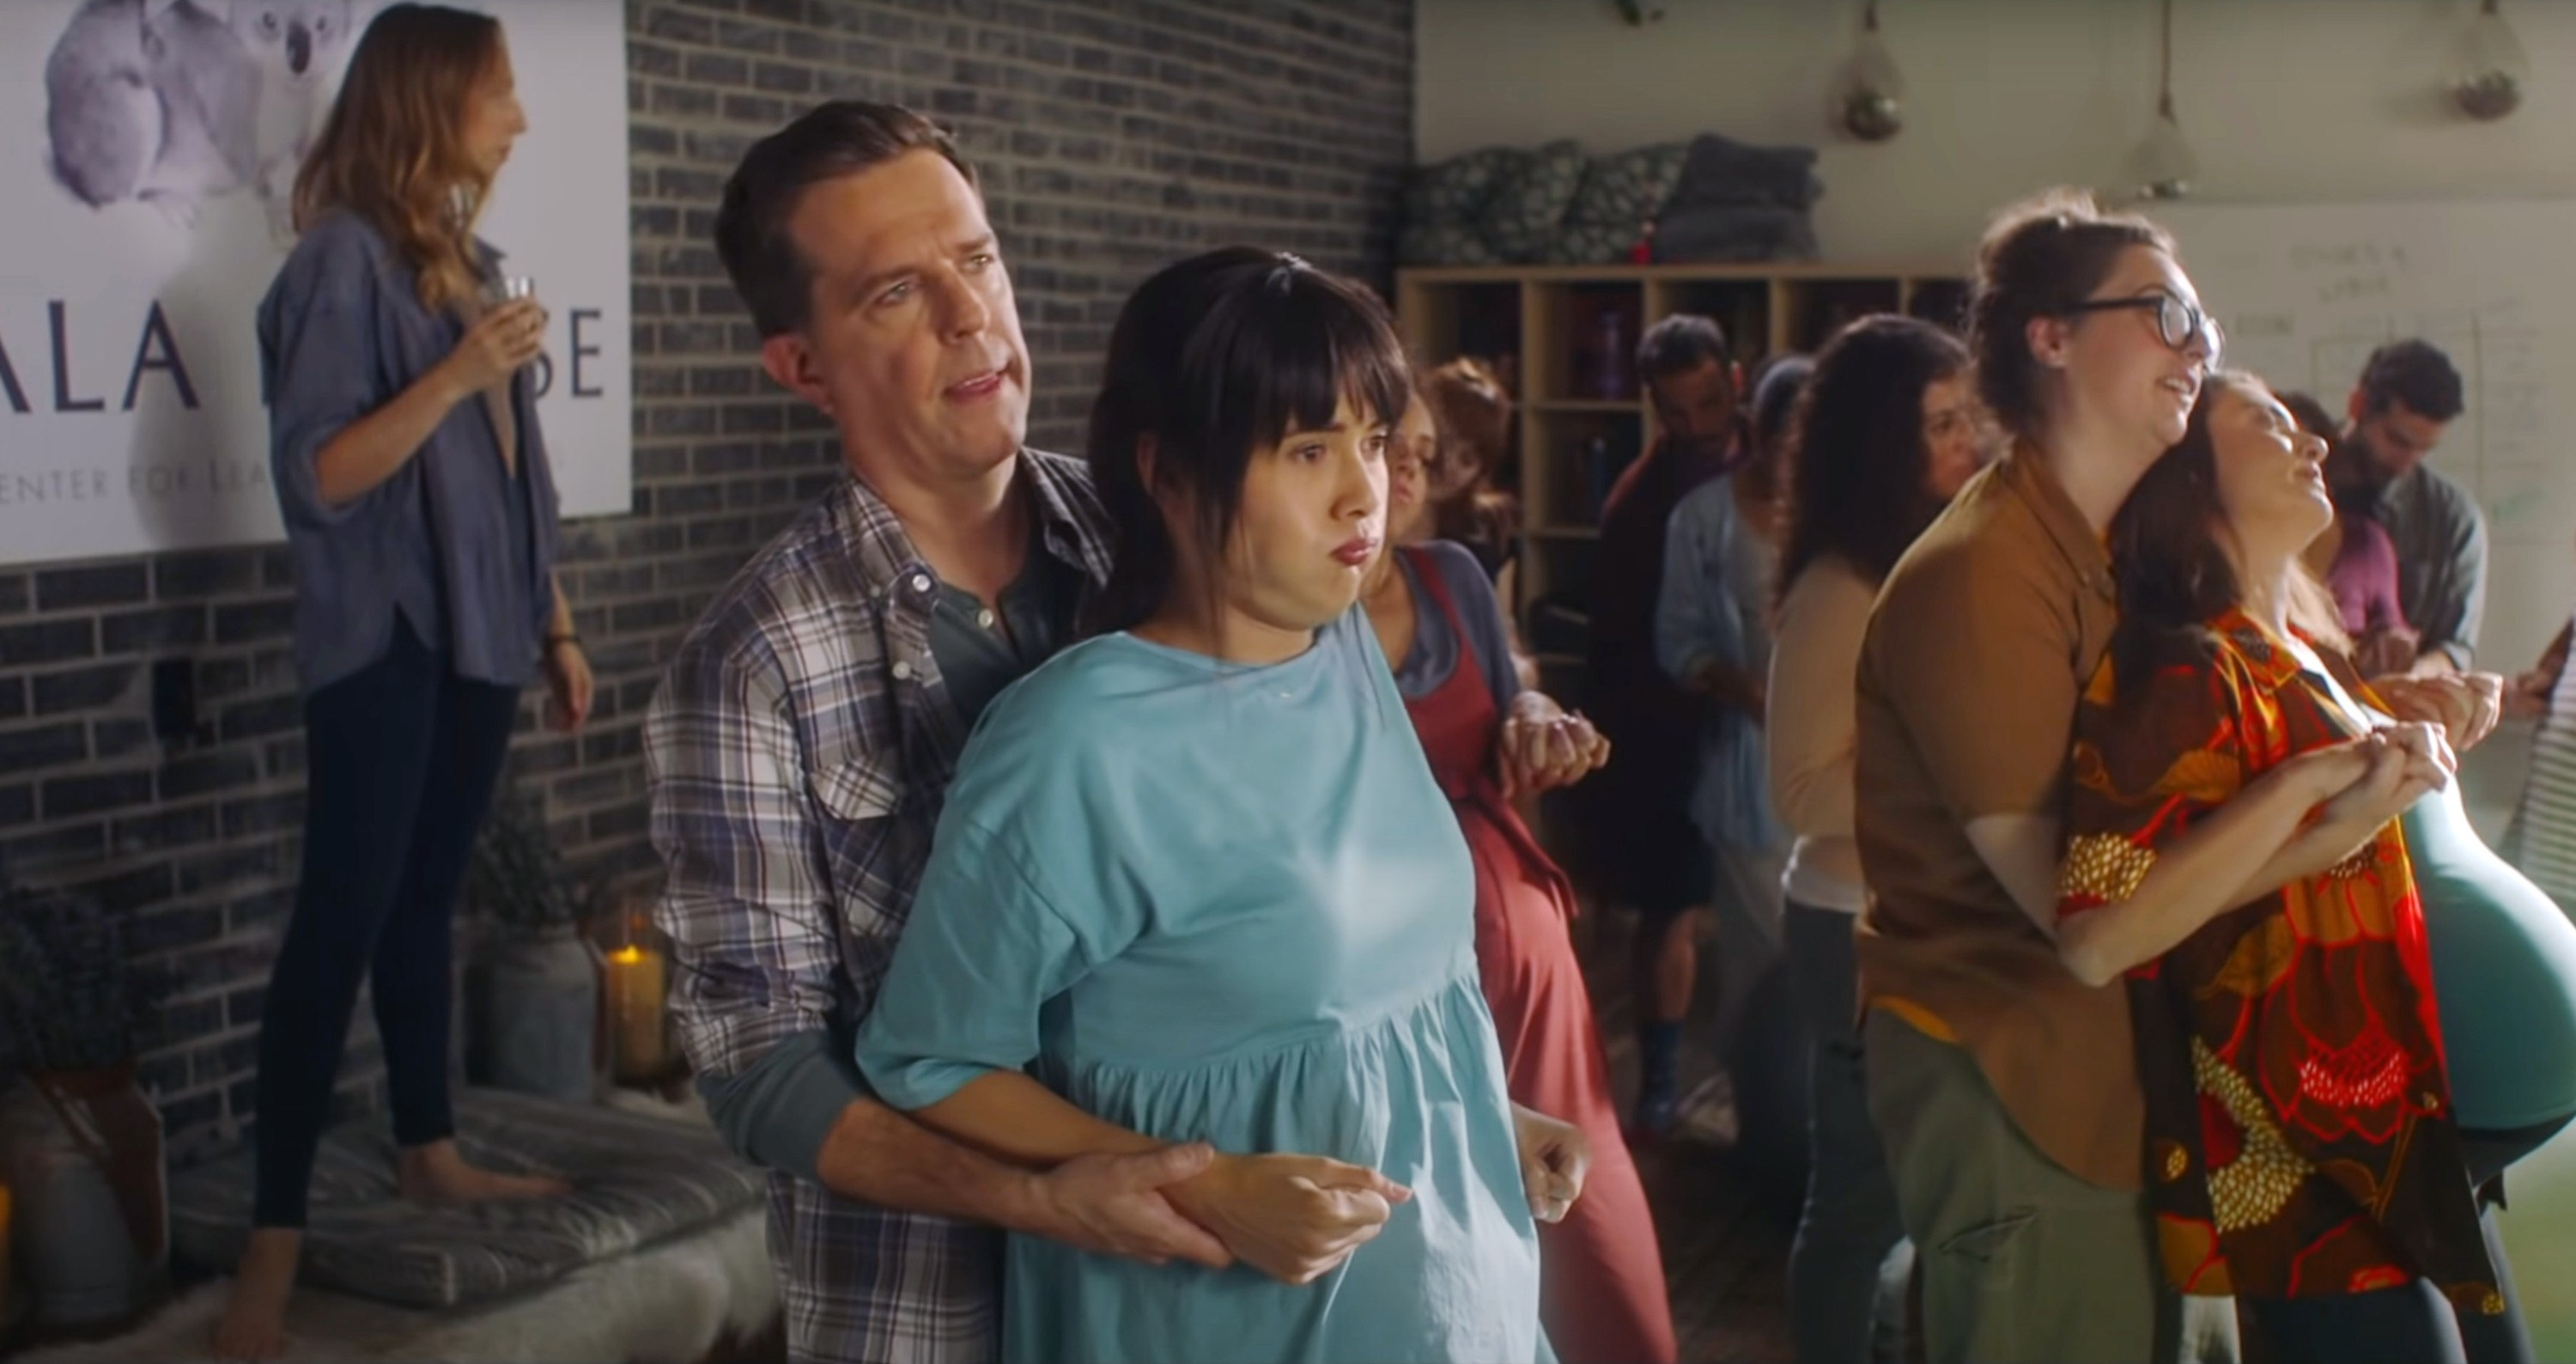 Ed Helms and Patti Harrison practice at a birthing class together